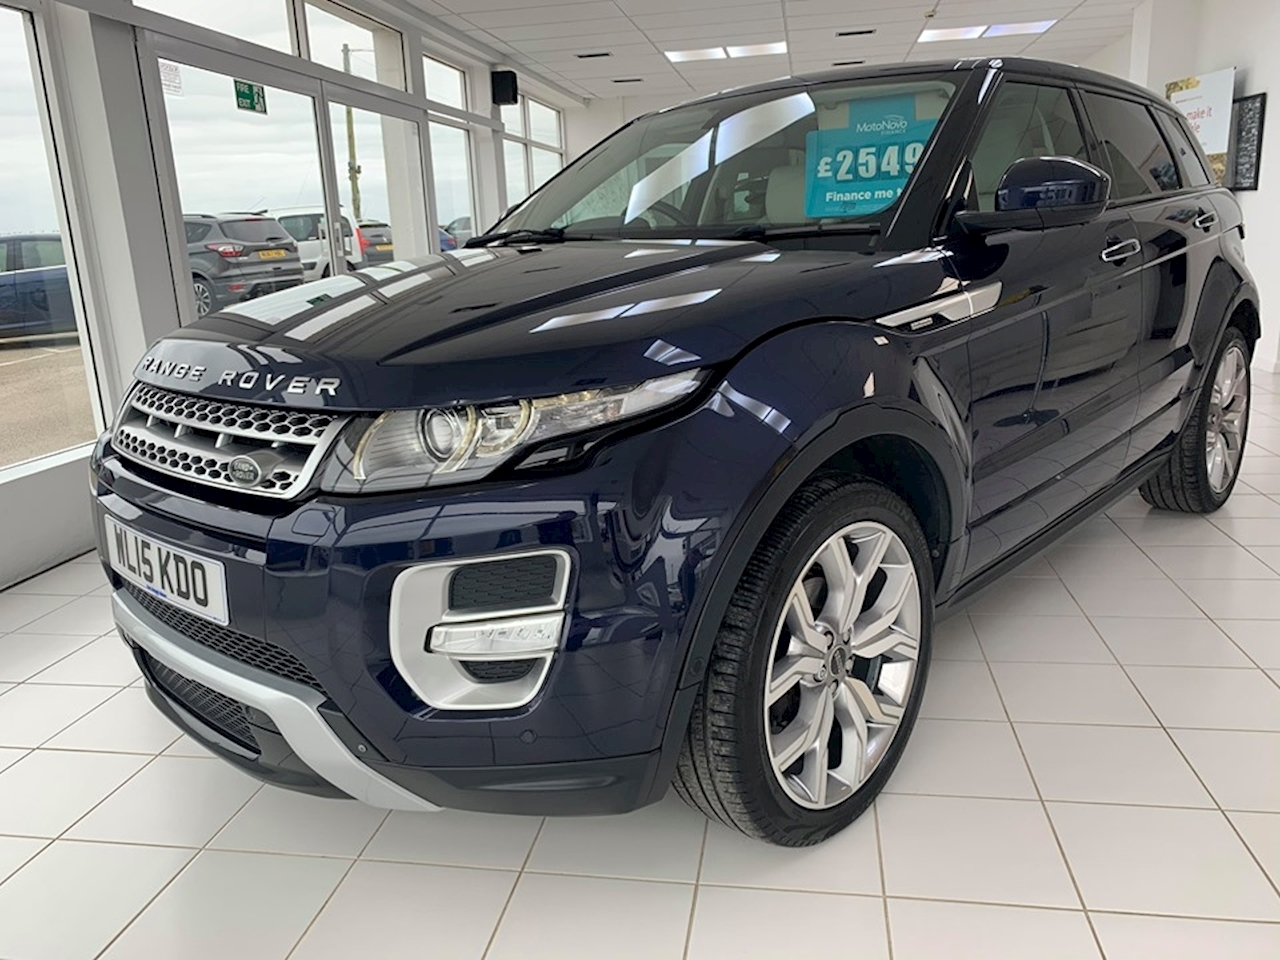 Land Rover Range Rover Evoque Sd4 Autobiography Estate 2.2 Automatic Diesel